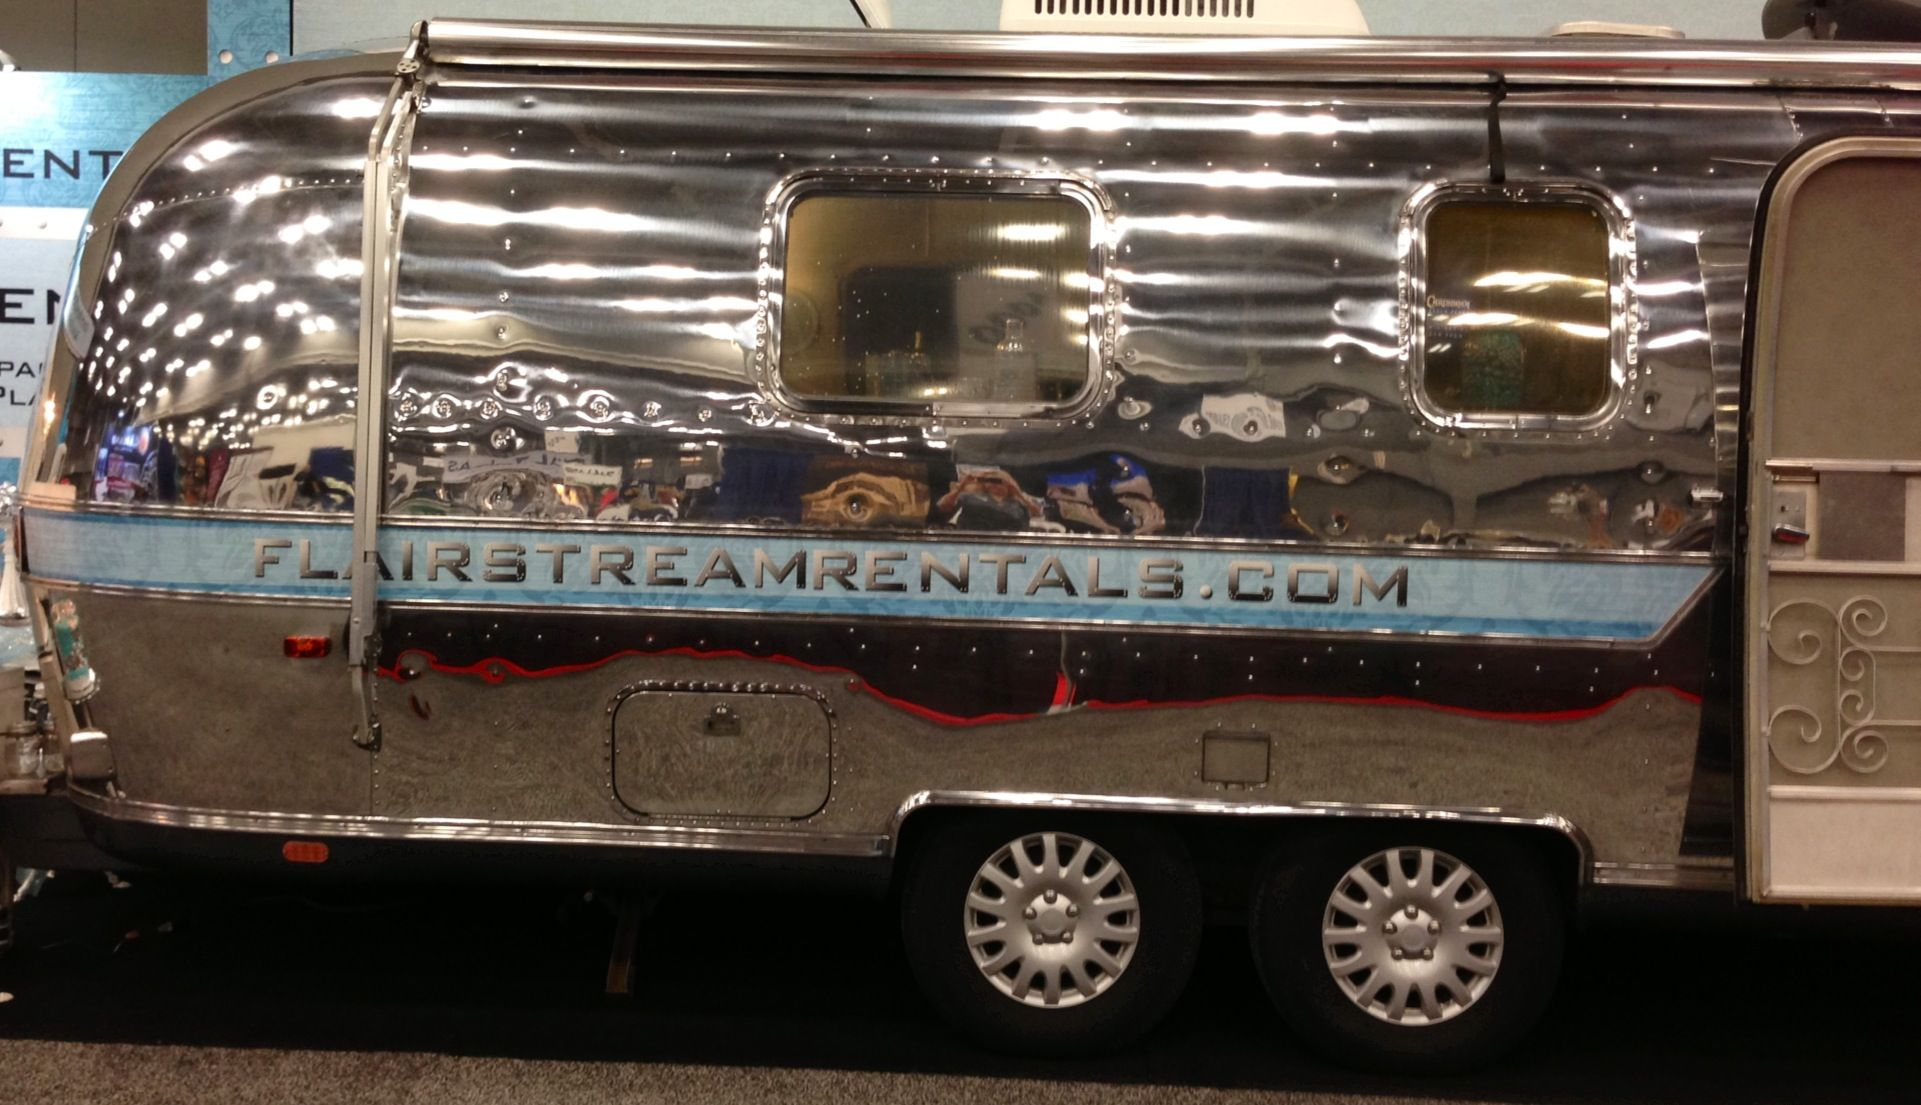 Announcing flairstream a luxurious vintage airstream